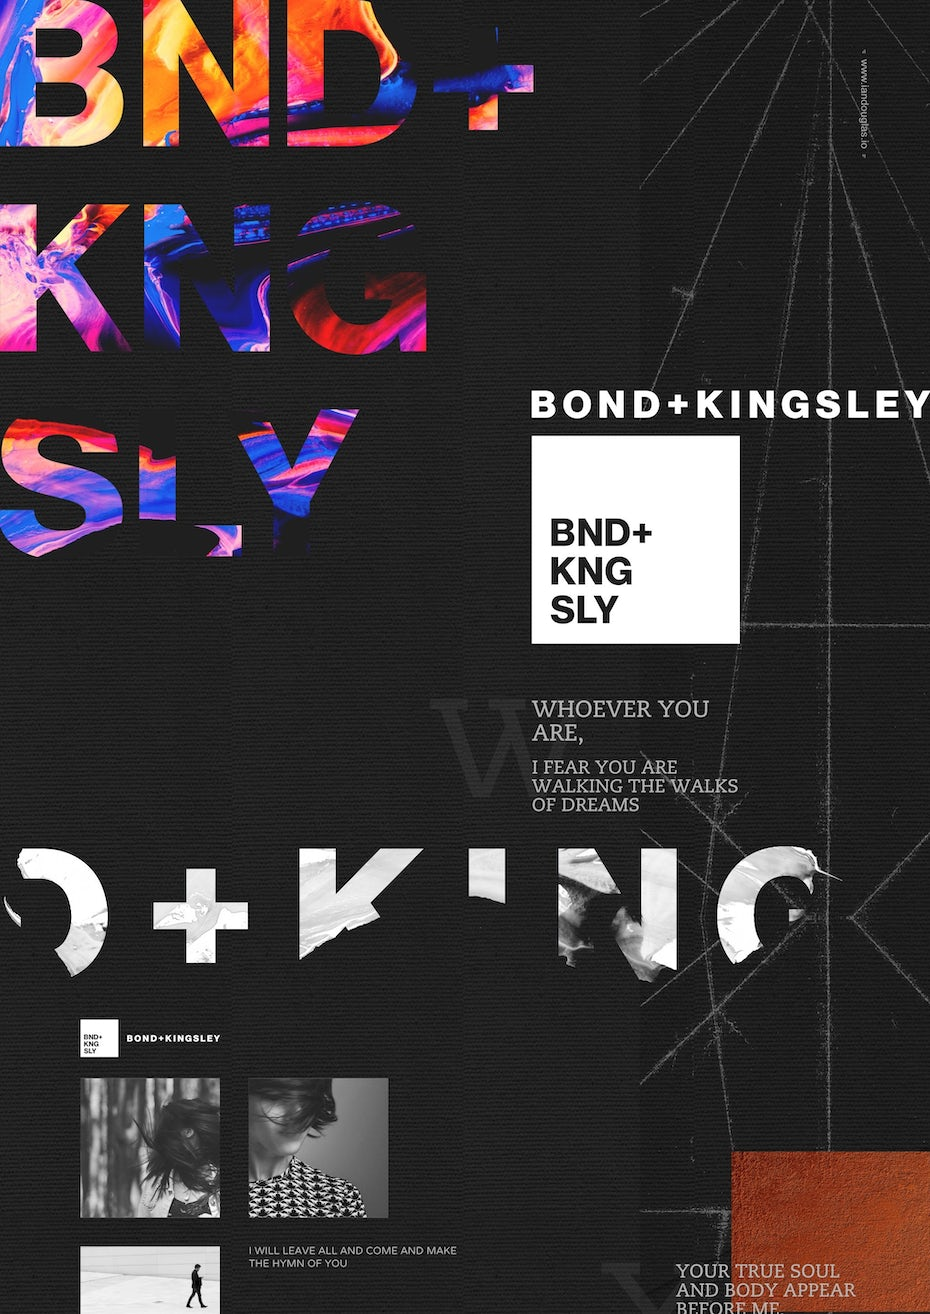 Color trends 2020 example: dark mode Bond + Kingsley branding